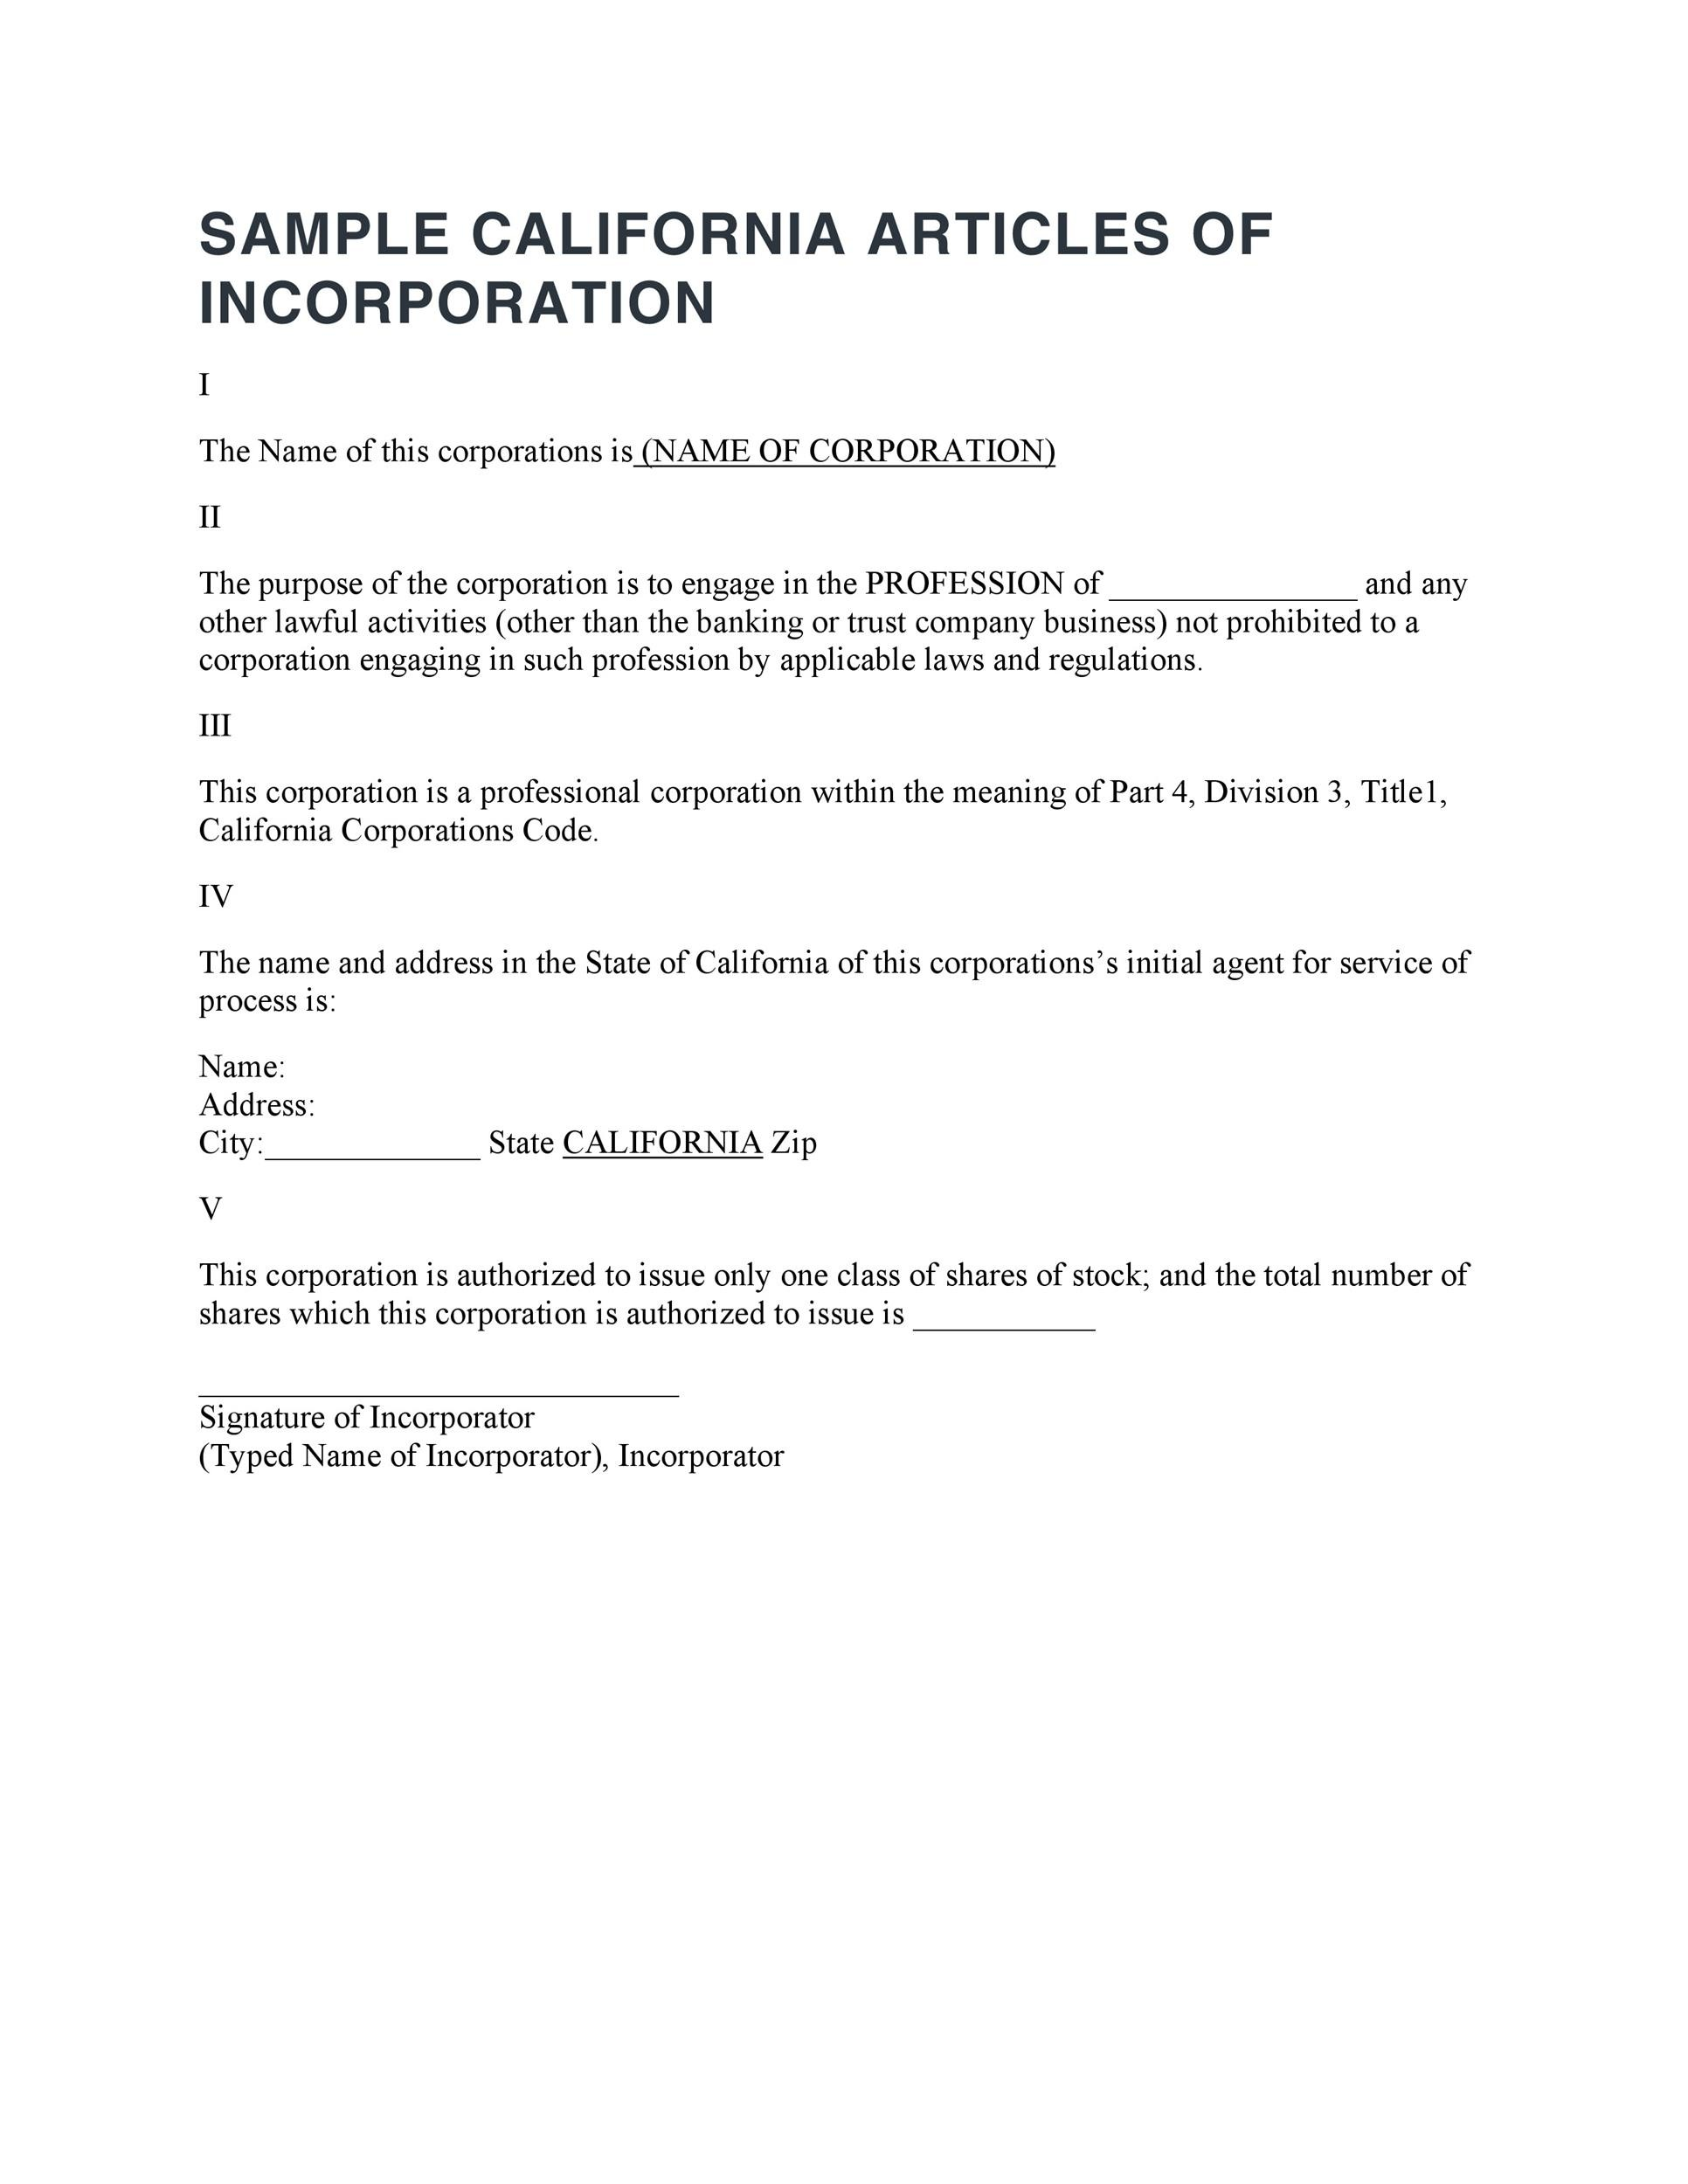 Free articles of incorporation template 03